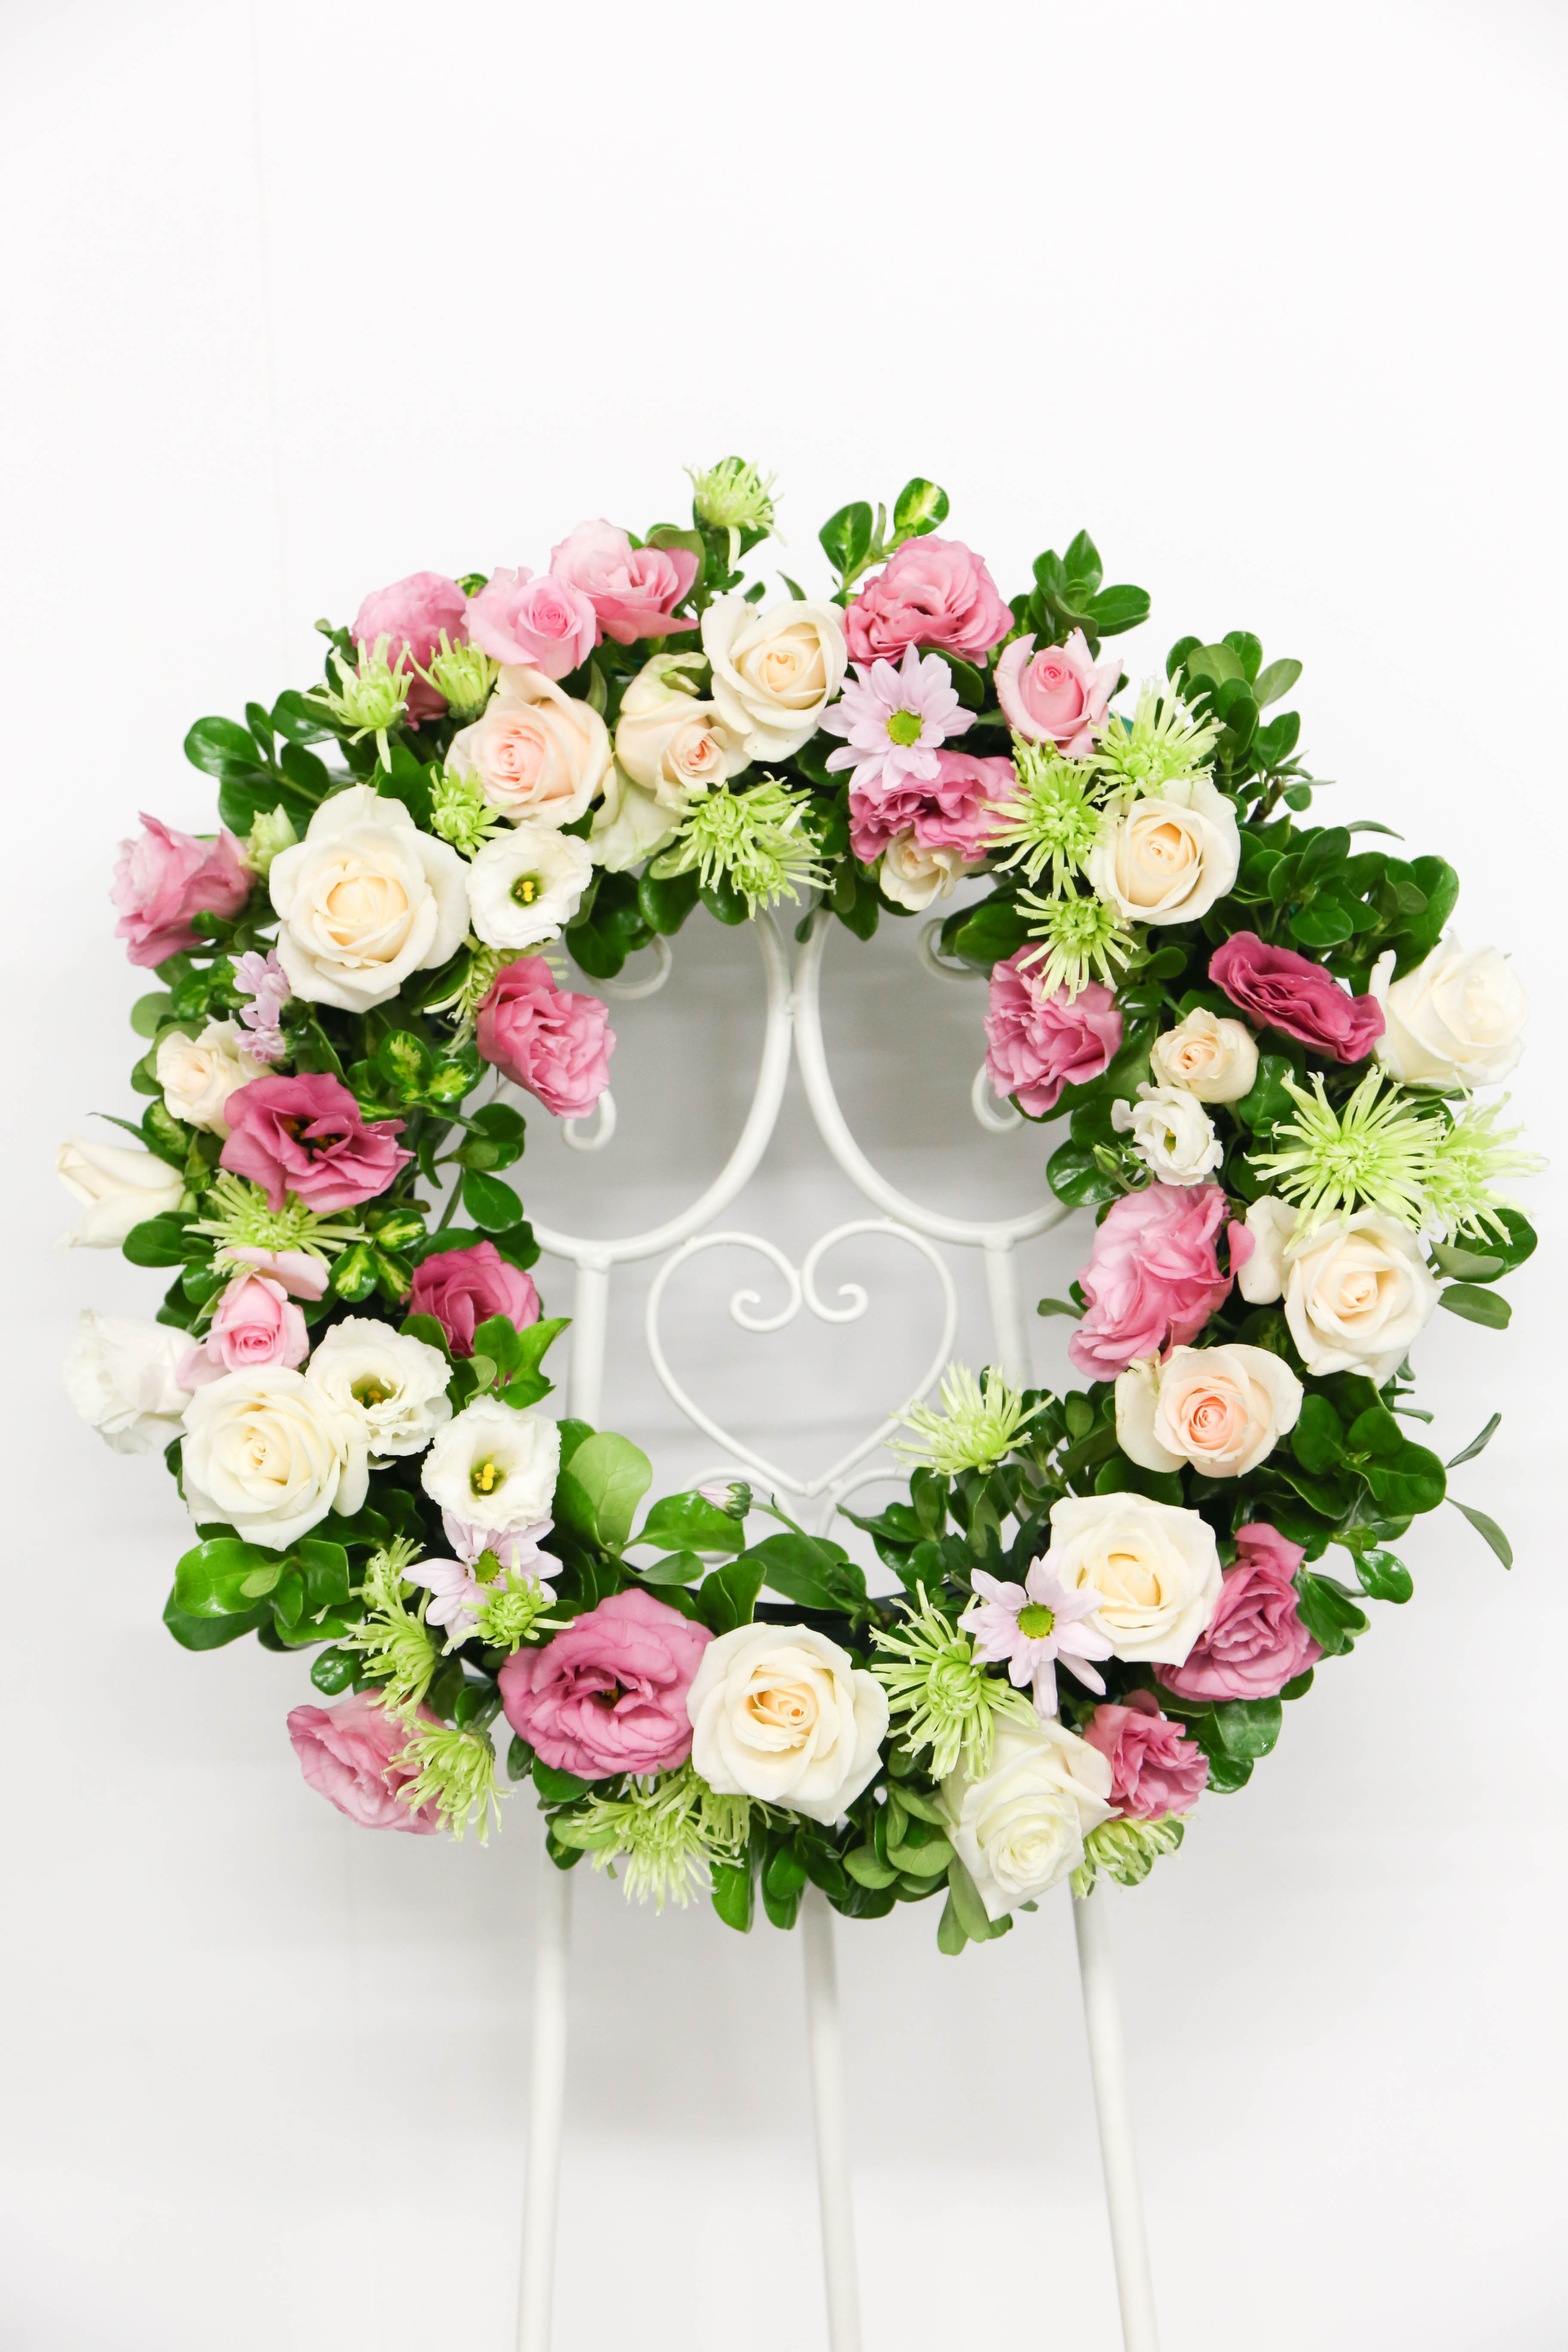 Wreath of pastel blooms including roses